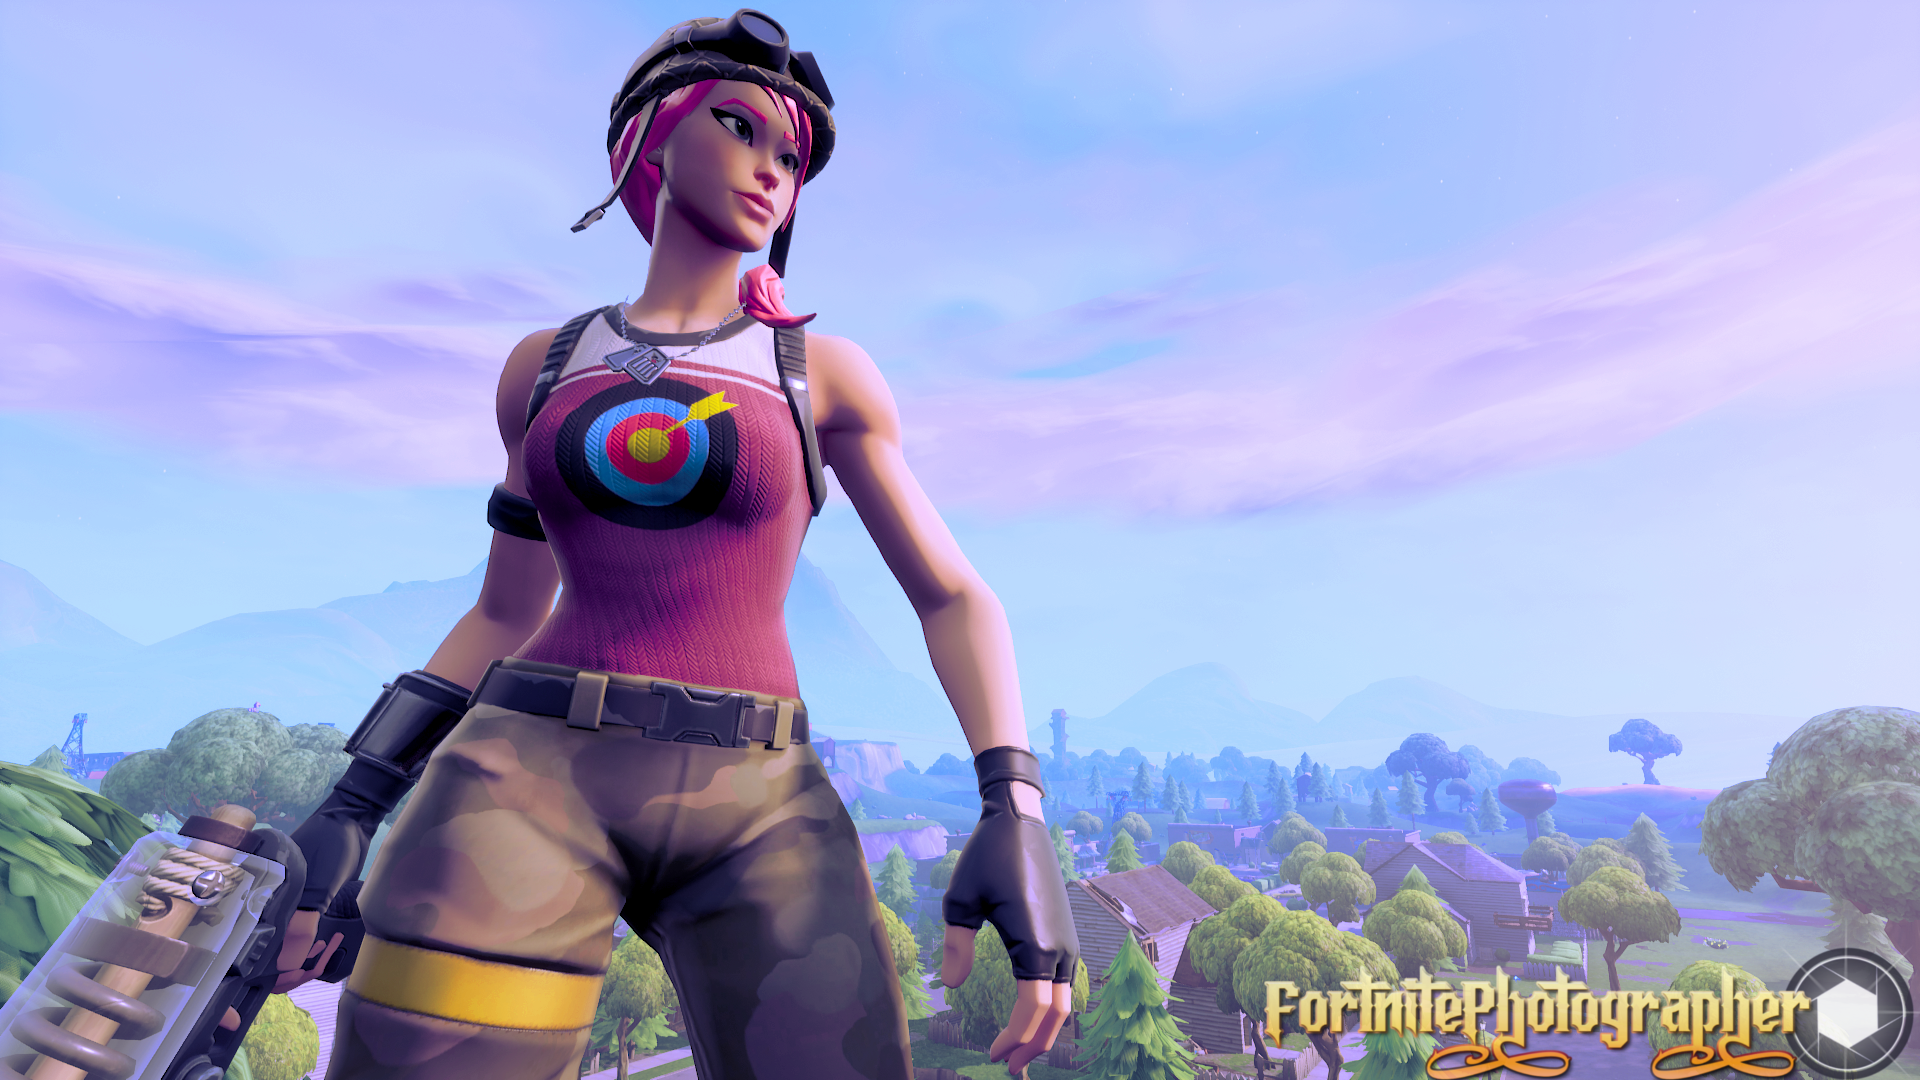 Happy Valentine S Day Everyone In This Special Day I Want To Dedicate My Post To My Girlfriend Luckych Gaming Wallpapers Best Gaming Wallpapers Fortnite